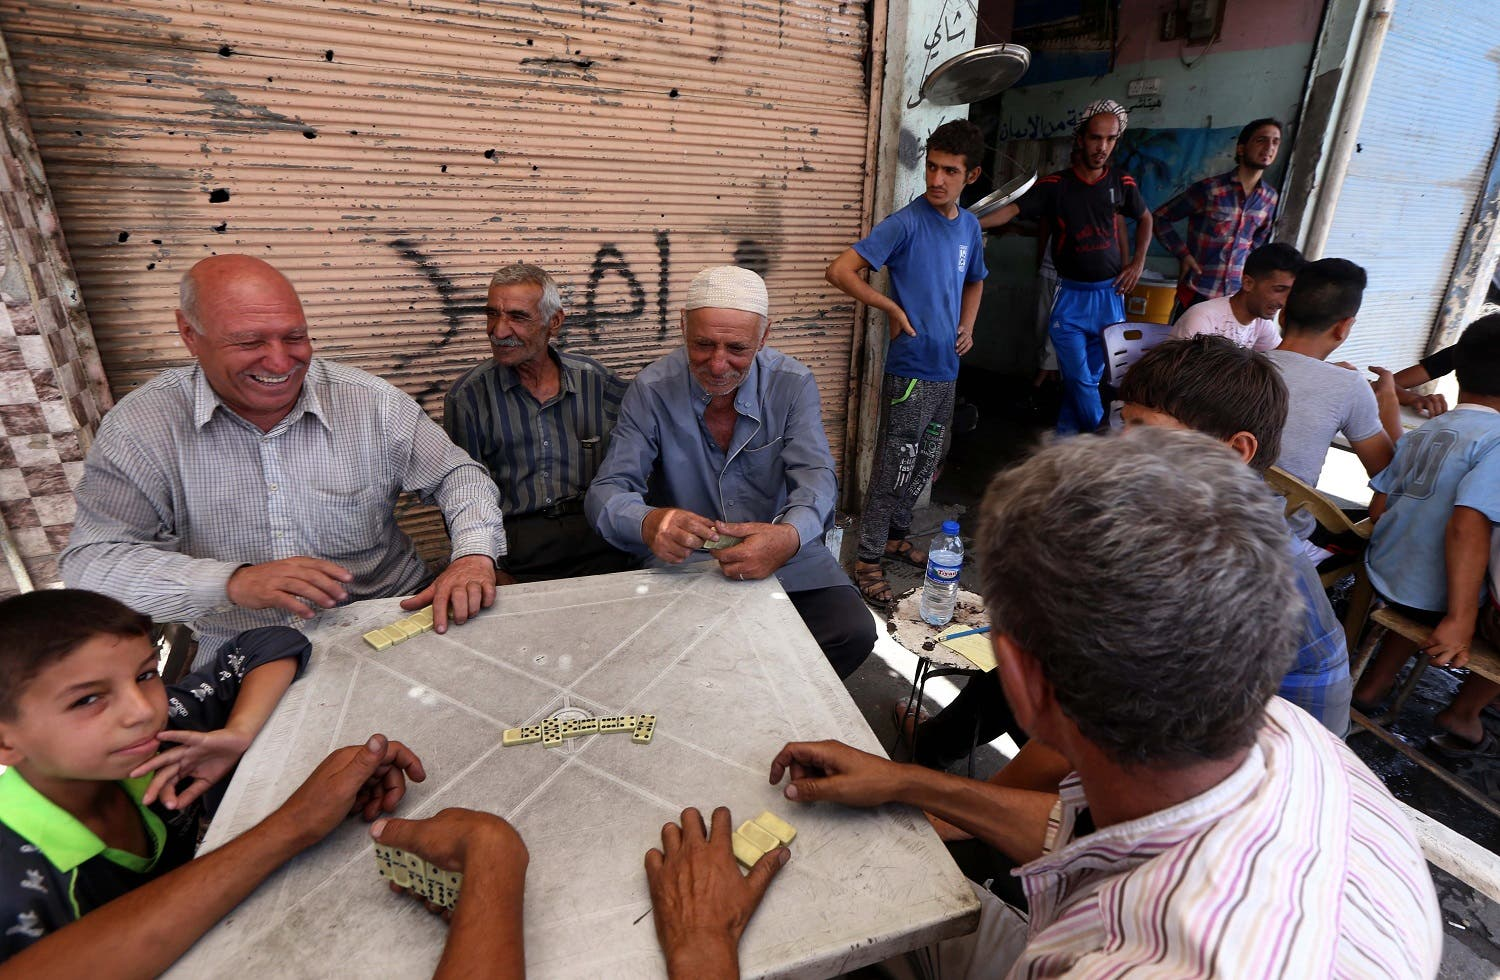 Iraqi men play dominos at a cafe in the old city in west Mosul on July 30, 2017. AFP